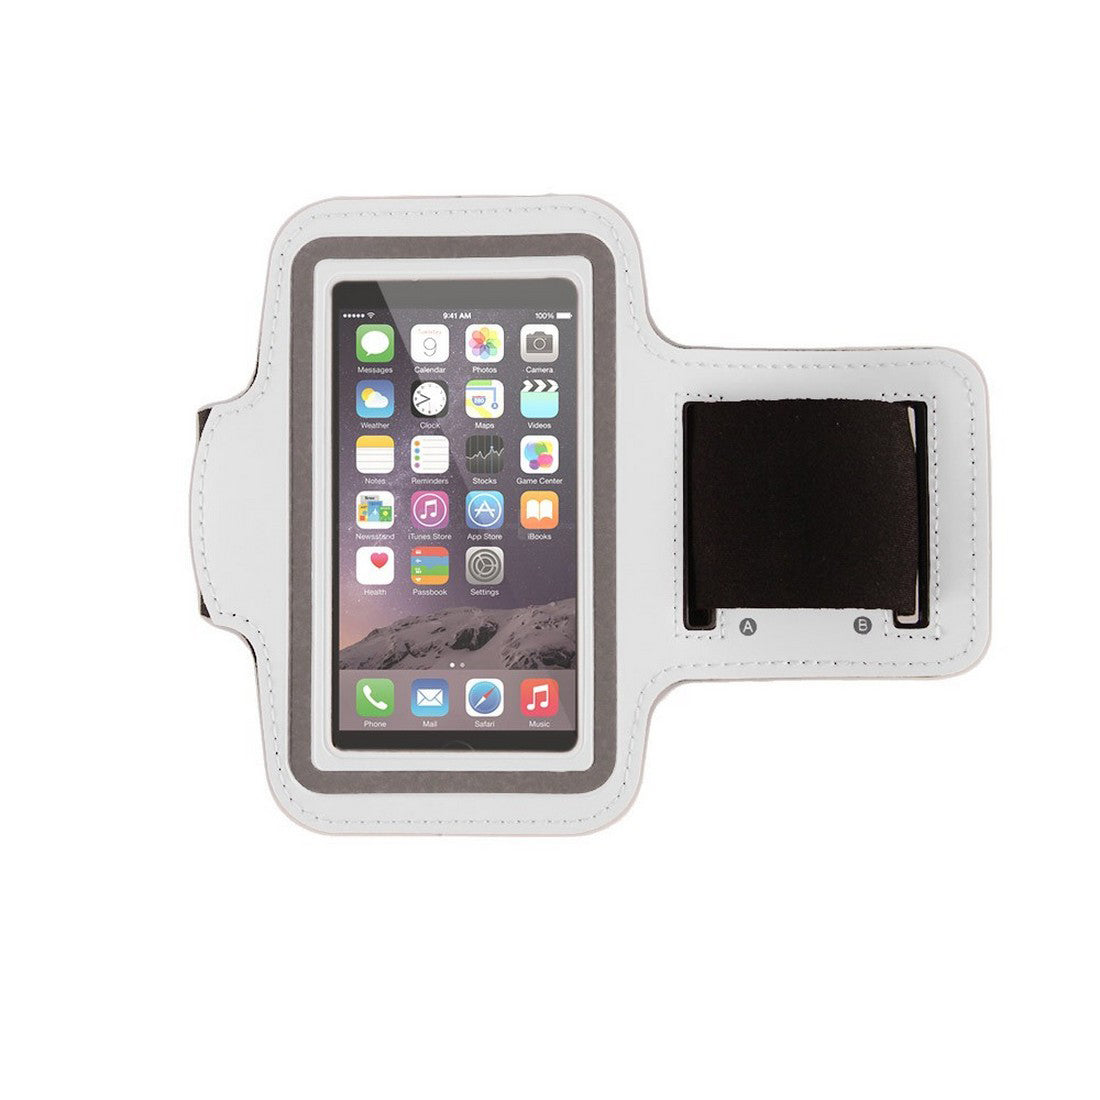 "Neoprene Armband Size 02 For iPhone 6S/ 6 4.7"" & Samsung Galaxy S3 S4 S5 & LG G2 & Nokia N920 & BlackBerry Z10 & HTC M7 White"